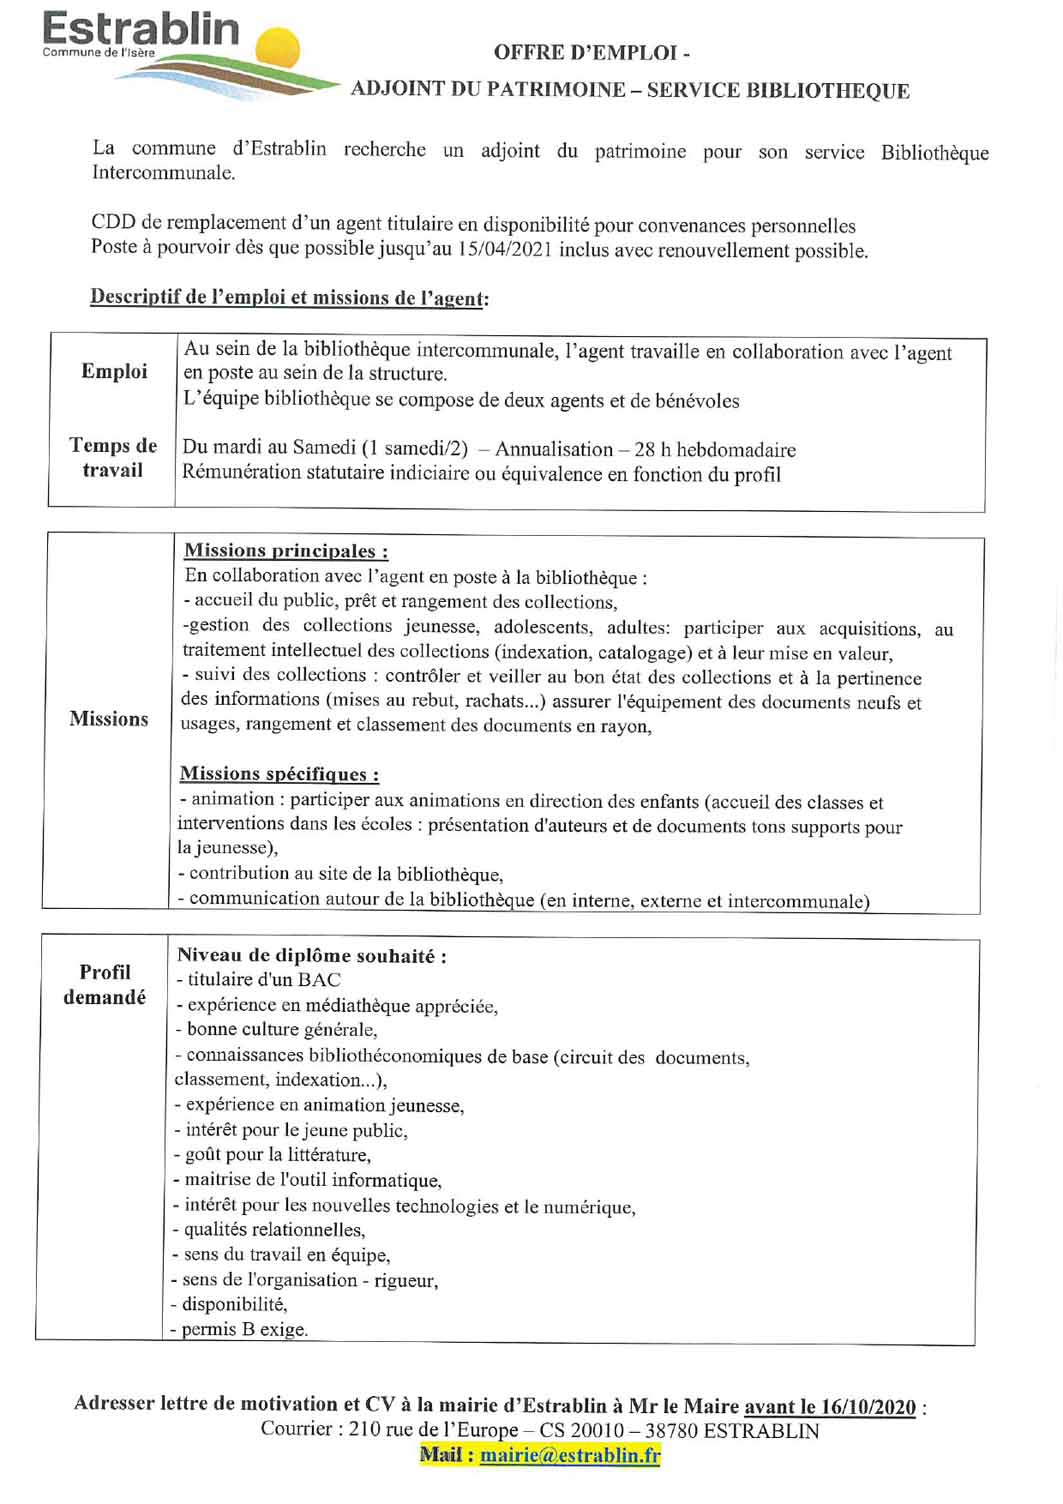 OFFRFE D_EMPLOI - BIBLIOTHECAIRE_page-0001.jpg